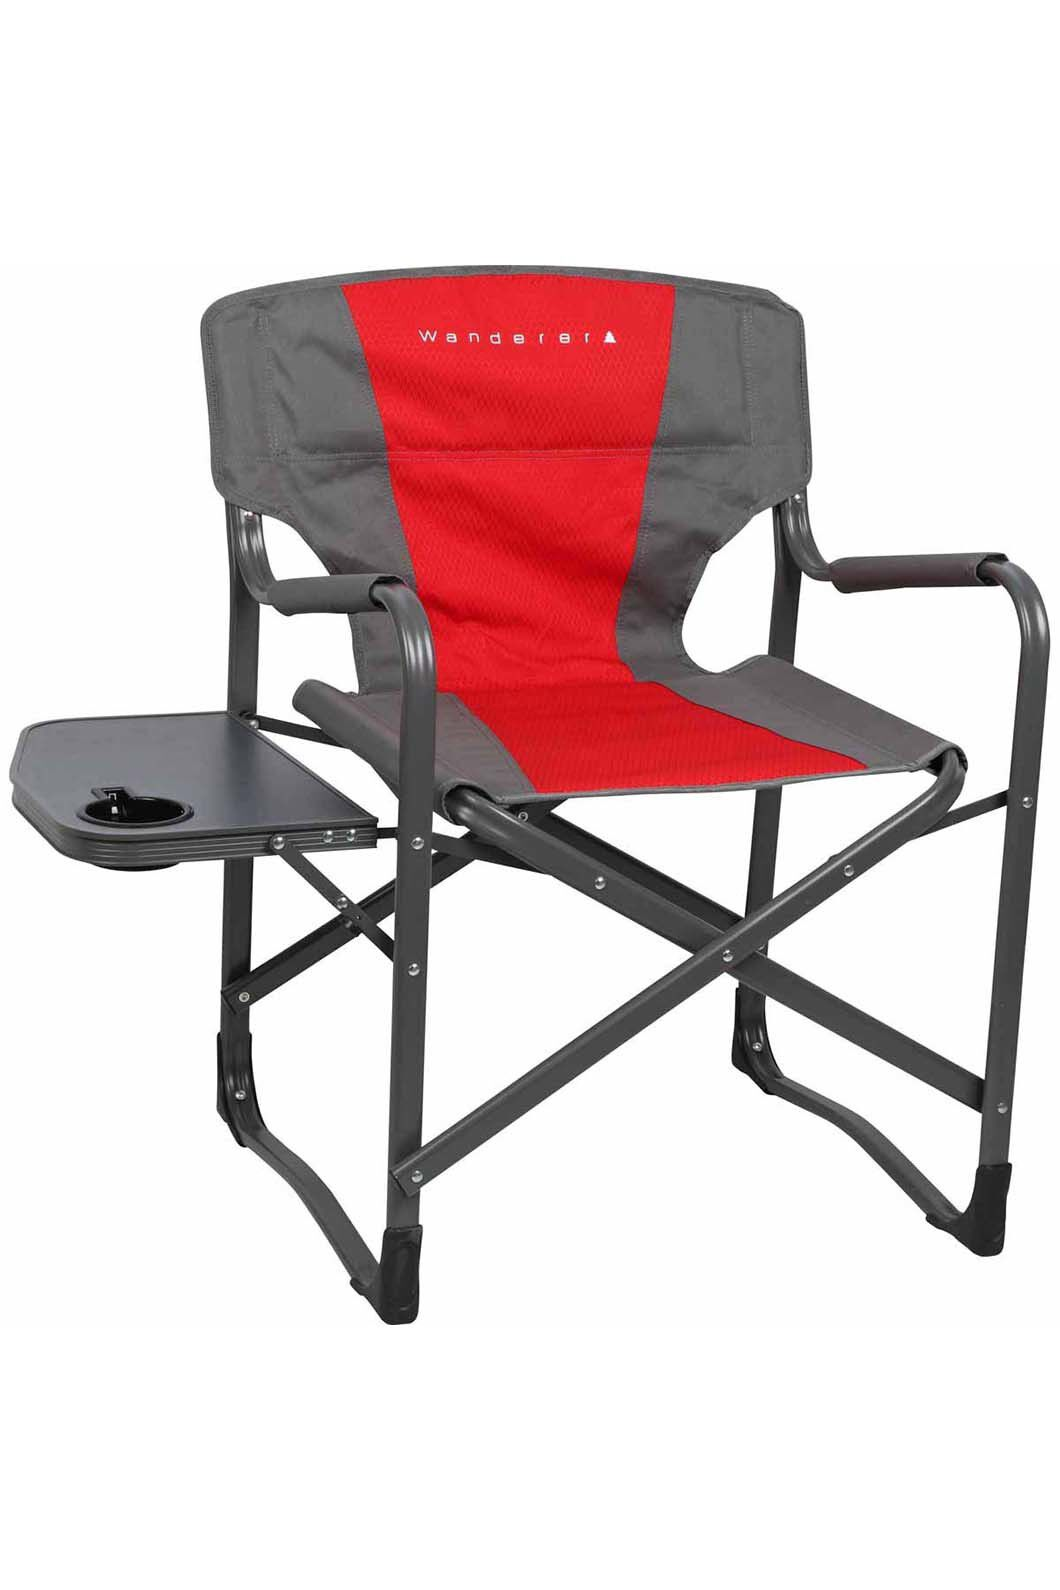 Wanderer Directors Chair with Side Table, None, hi-res